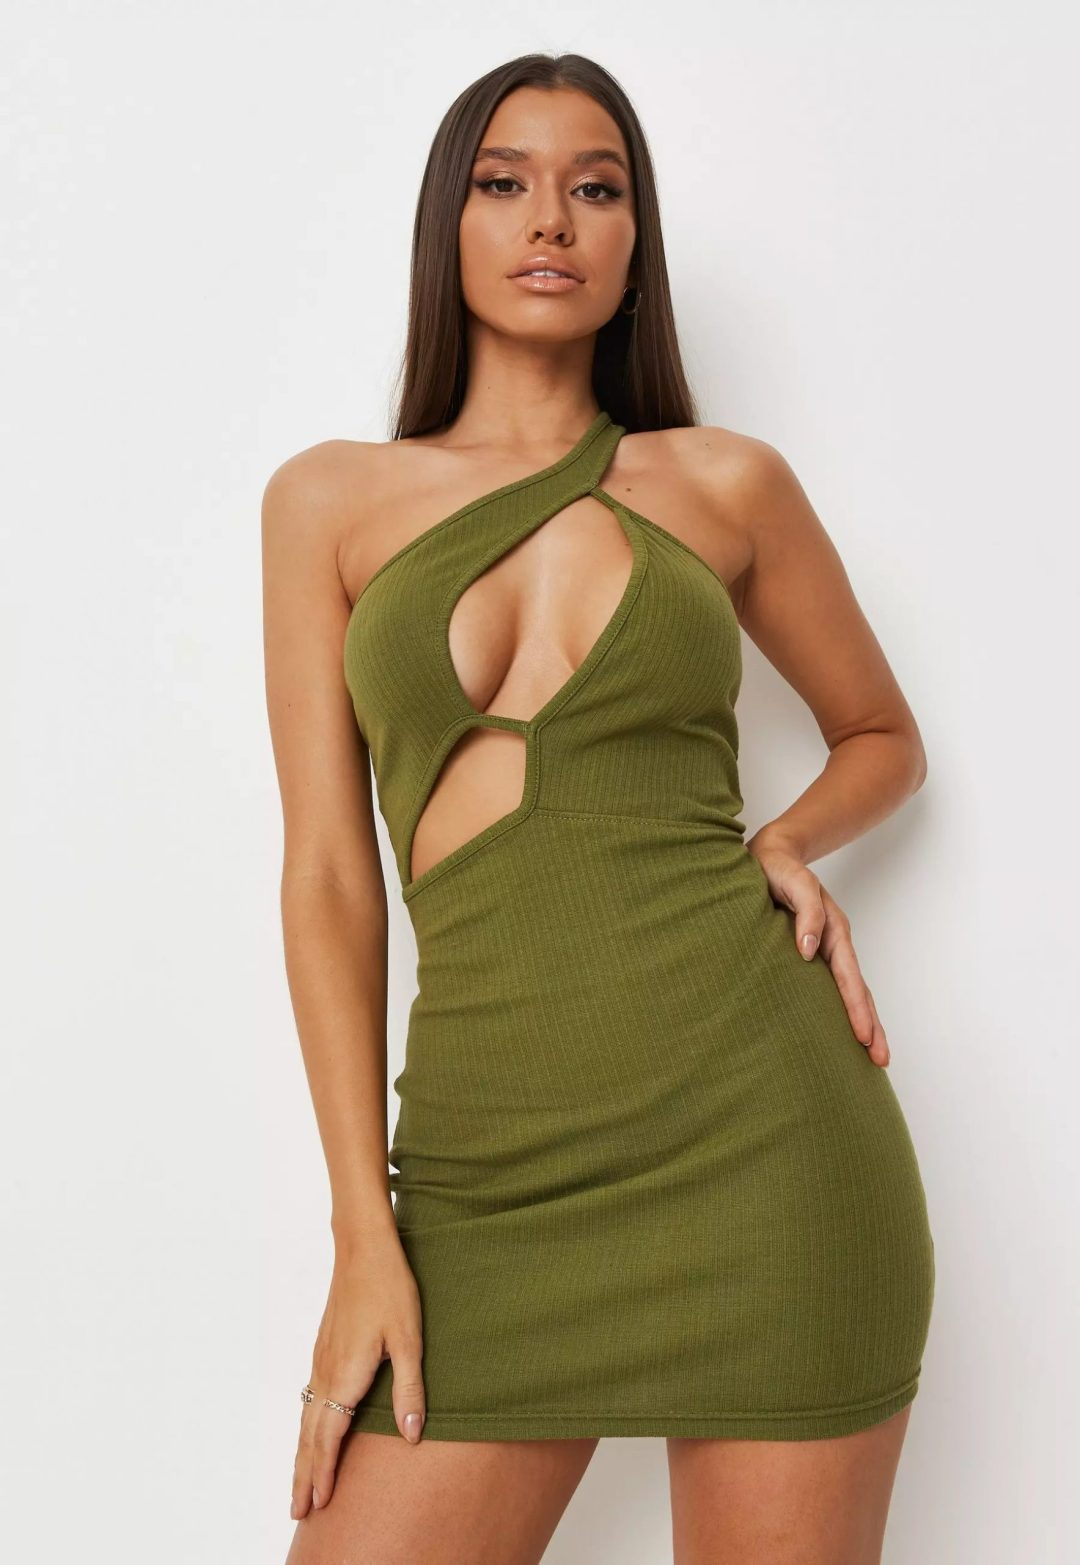 Sexy green cut-out dress for aesthetic outfits